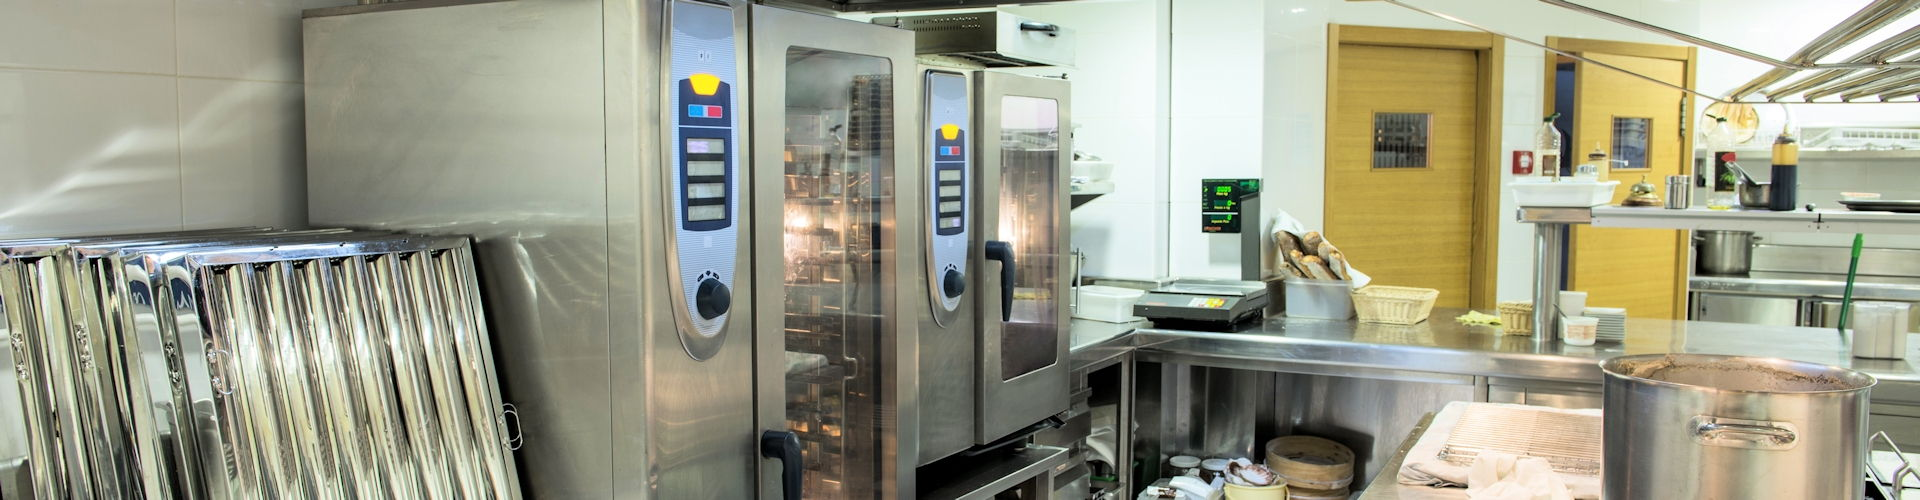 Awesome Mb Food Equipment Your Best Supplier Of Used Food Equipment Download Free Architecture Designs Licukmadebymaigaardcom